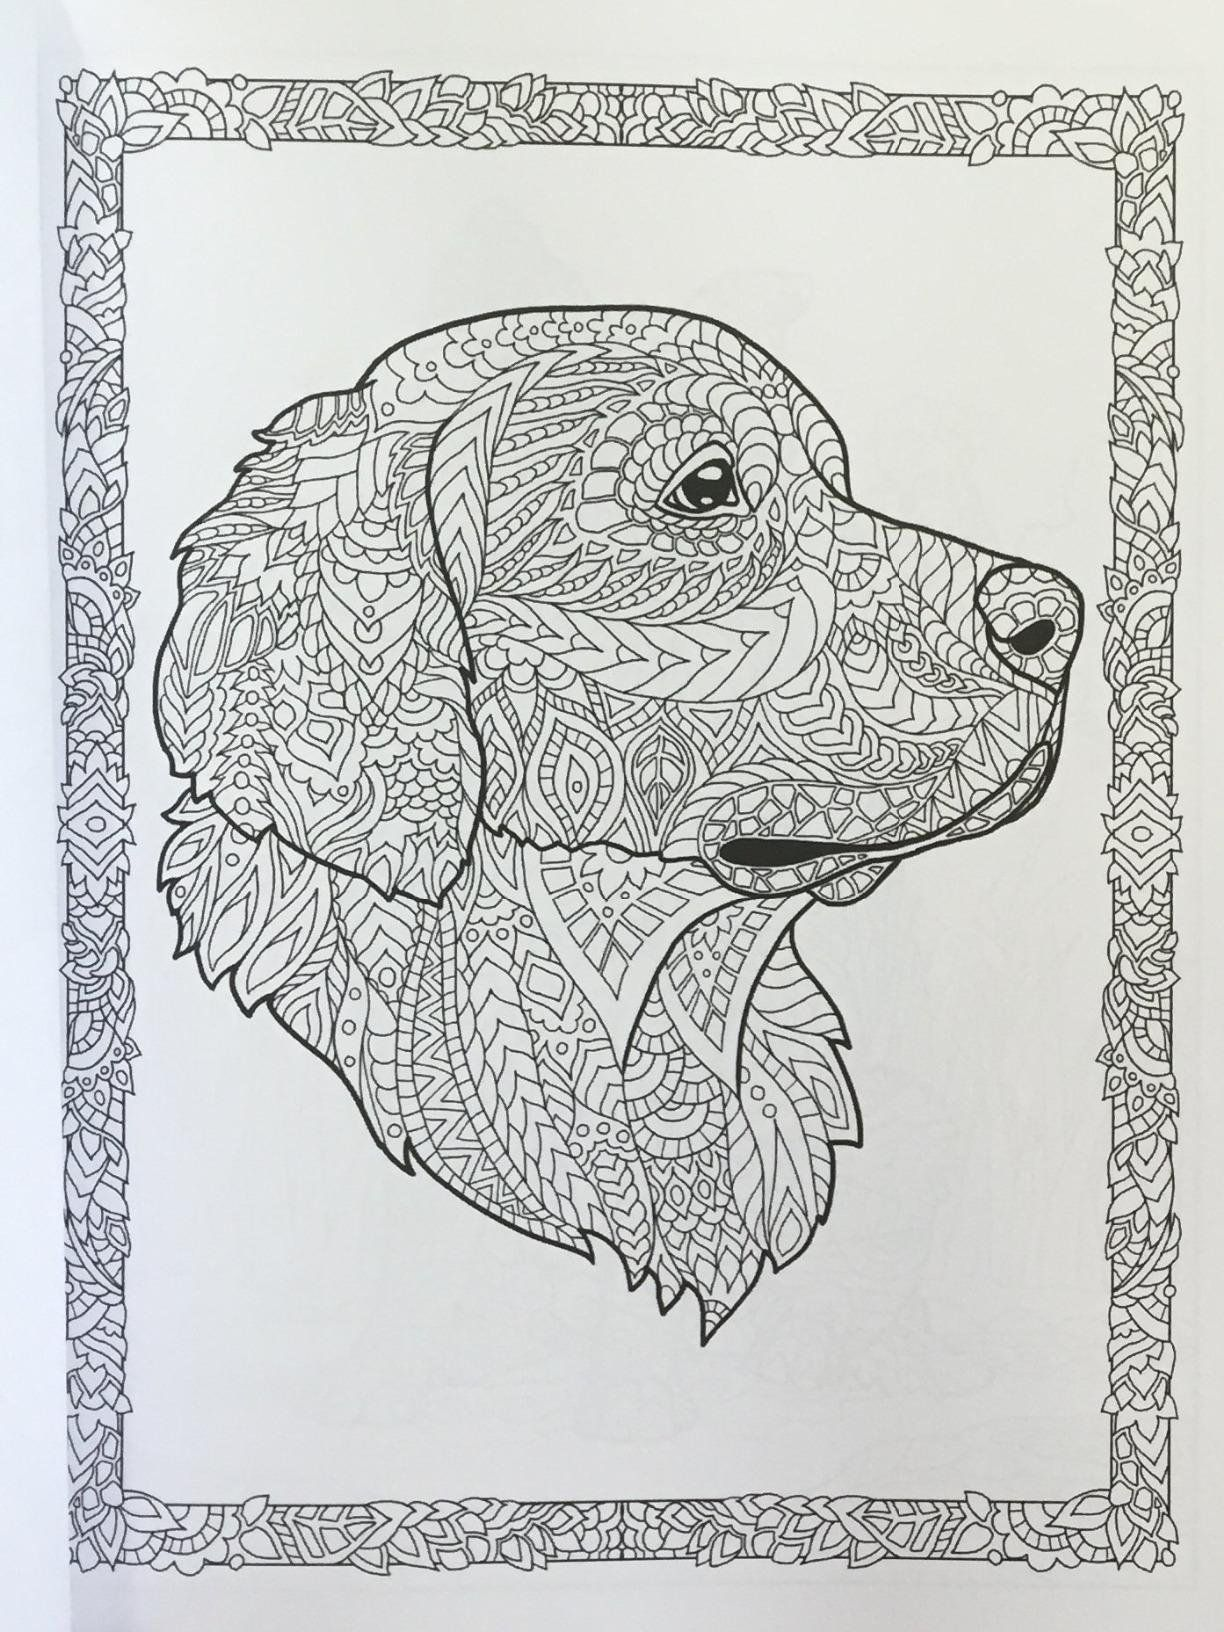 Doodle Dogs Coloring Book For Adults Happy Coloring Amanda Neel Dog Coloring Book Dog Coloring Page Animal Coloring Pages [ 1632 x 1224 Pixel ]